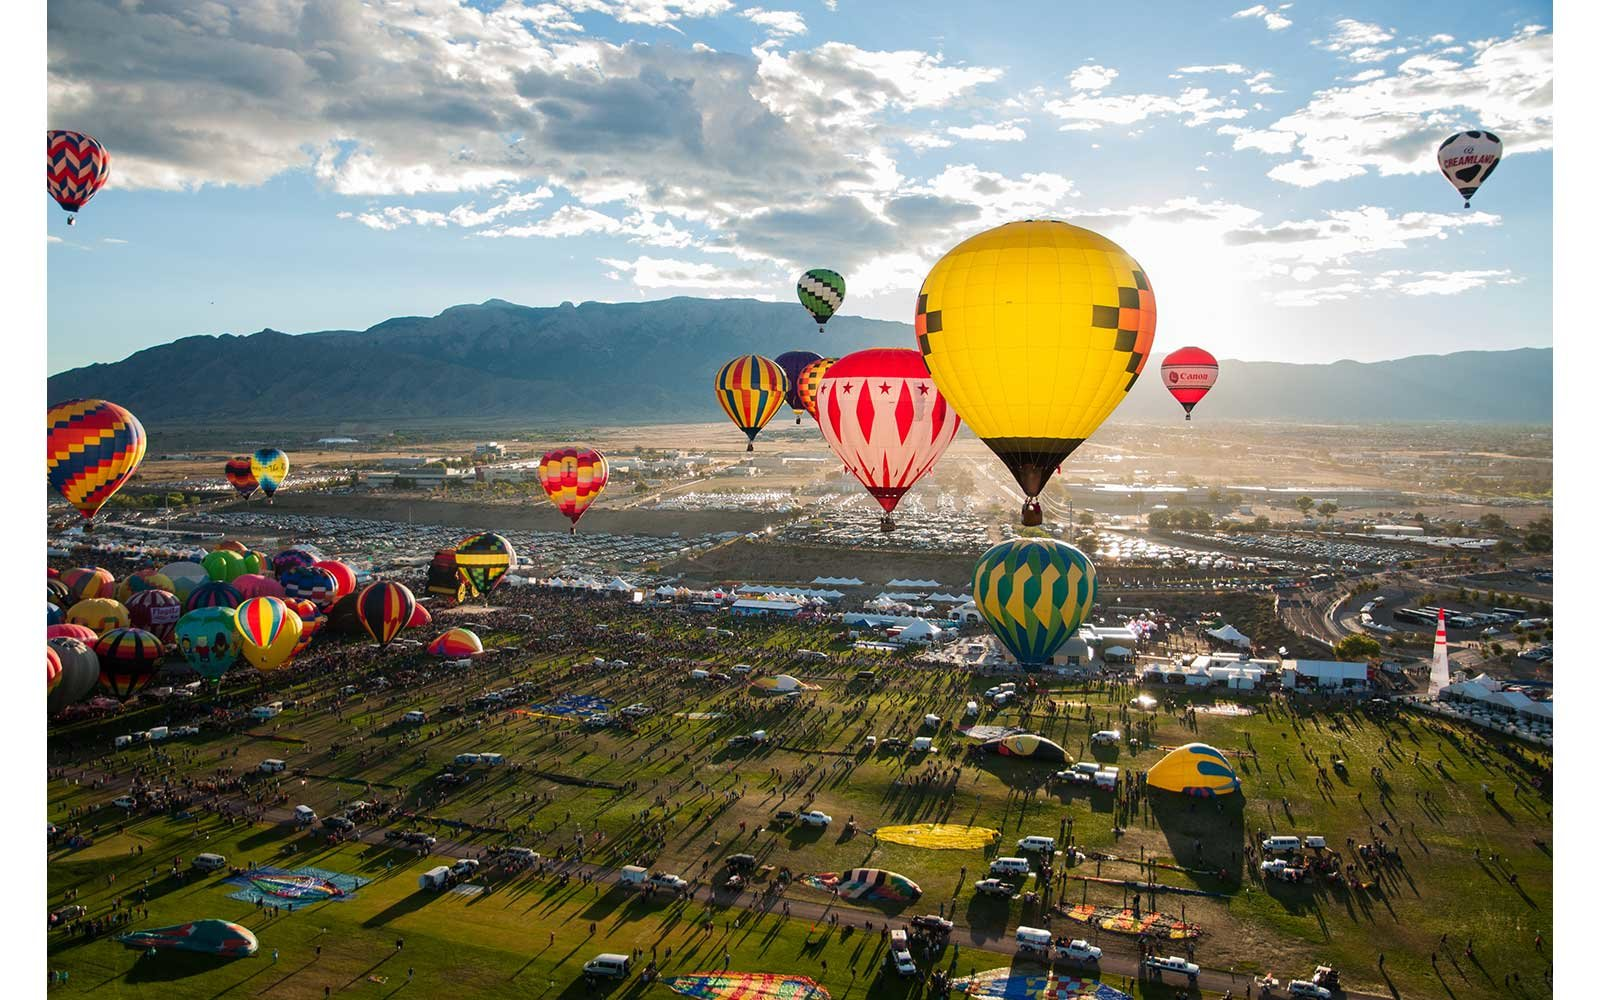 Balloon Fiesta seen from the sky